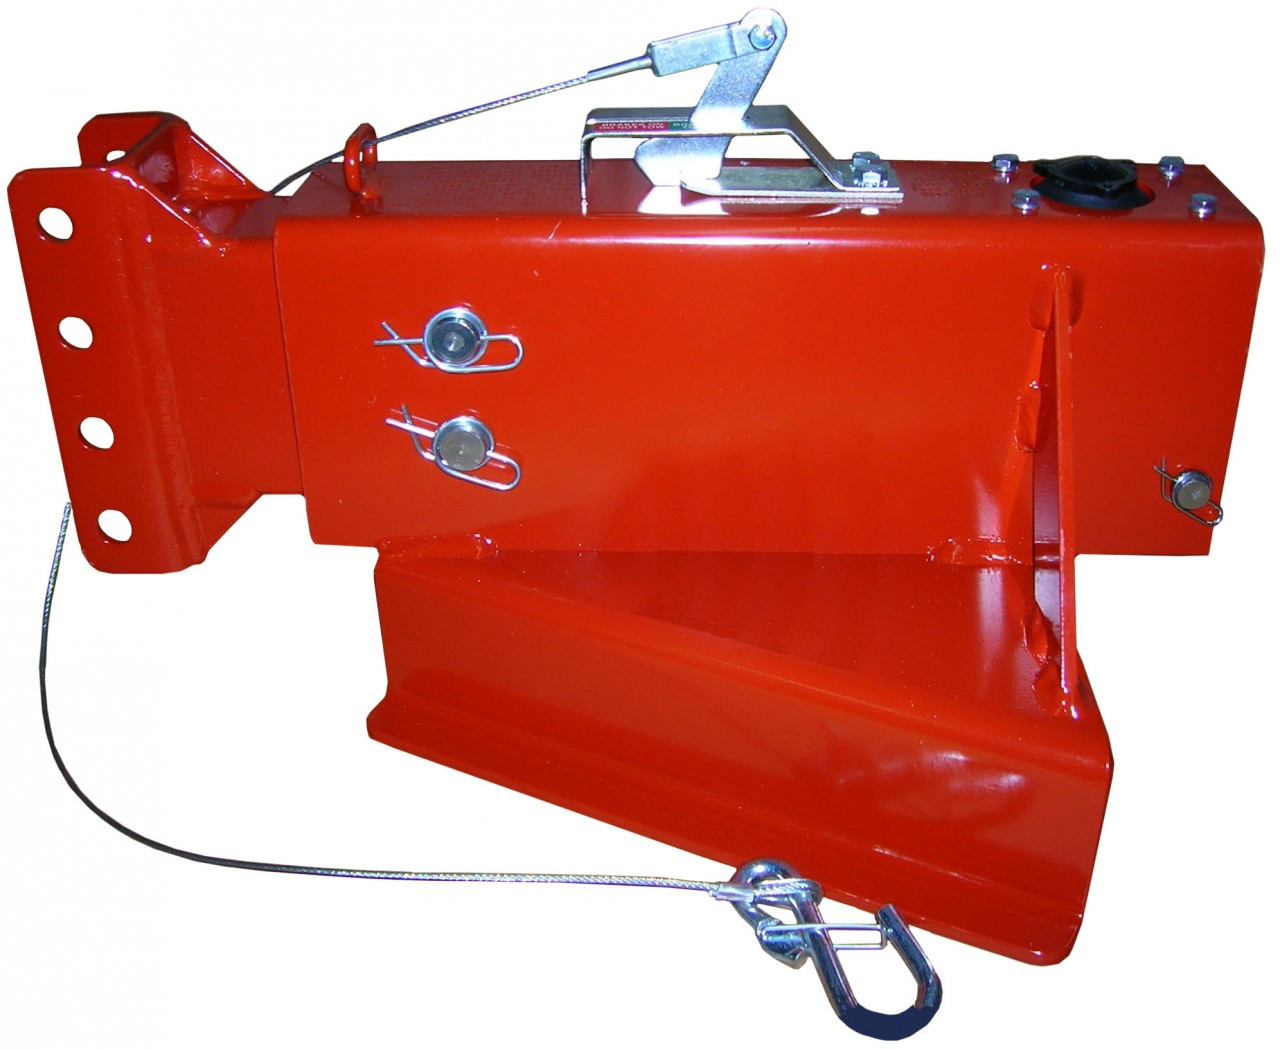 DA10AF --- Demco Hydraulic Brake A-Frame Actuator with Centered Channel - 12,500 lb Capacity - Model DA10